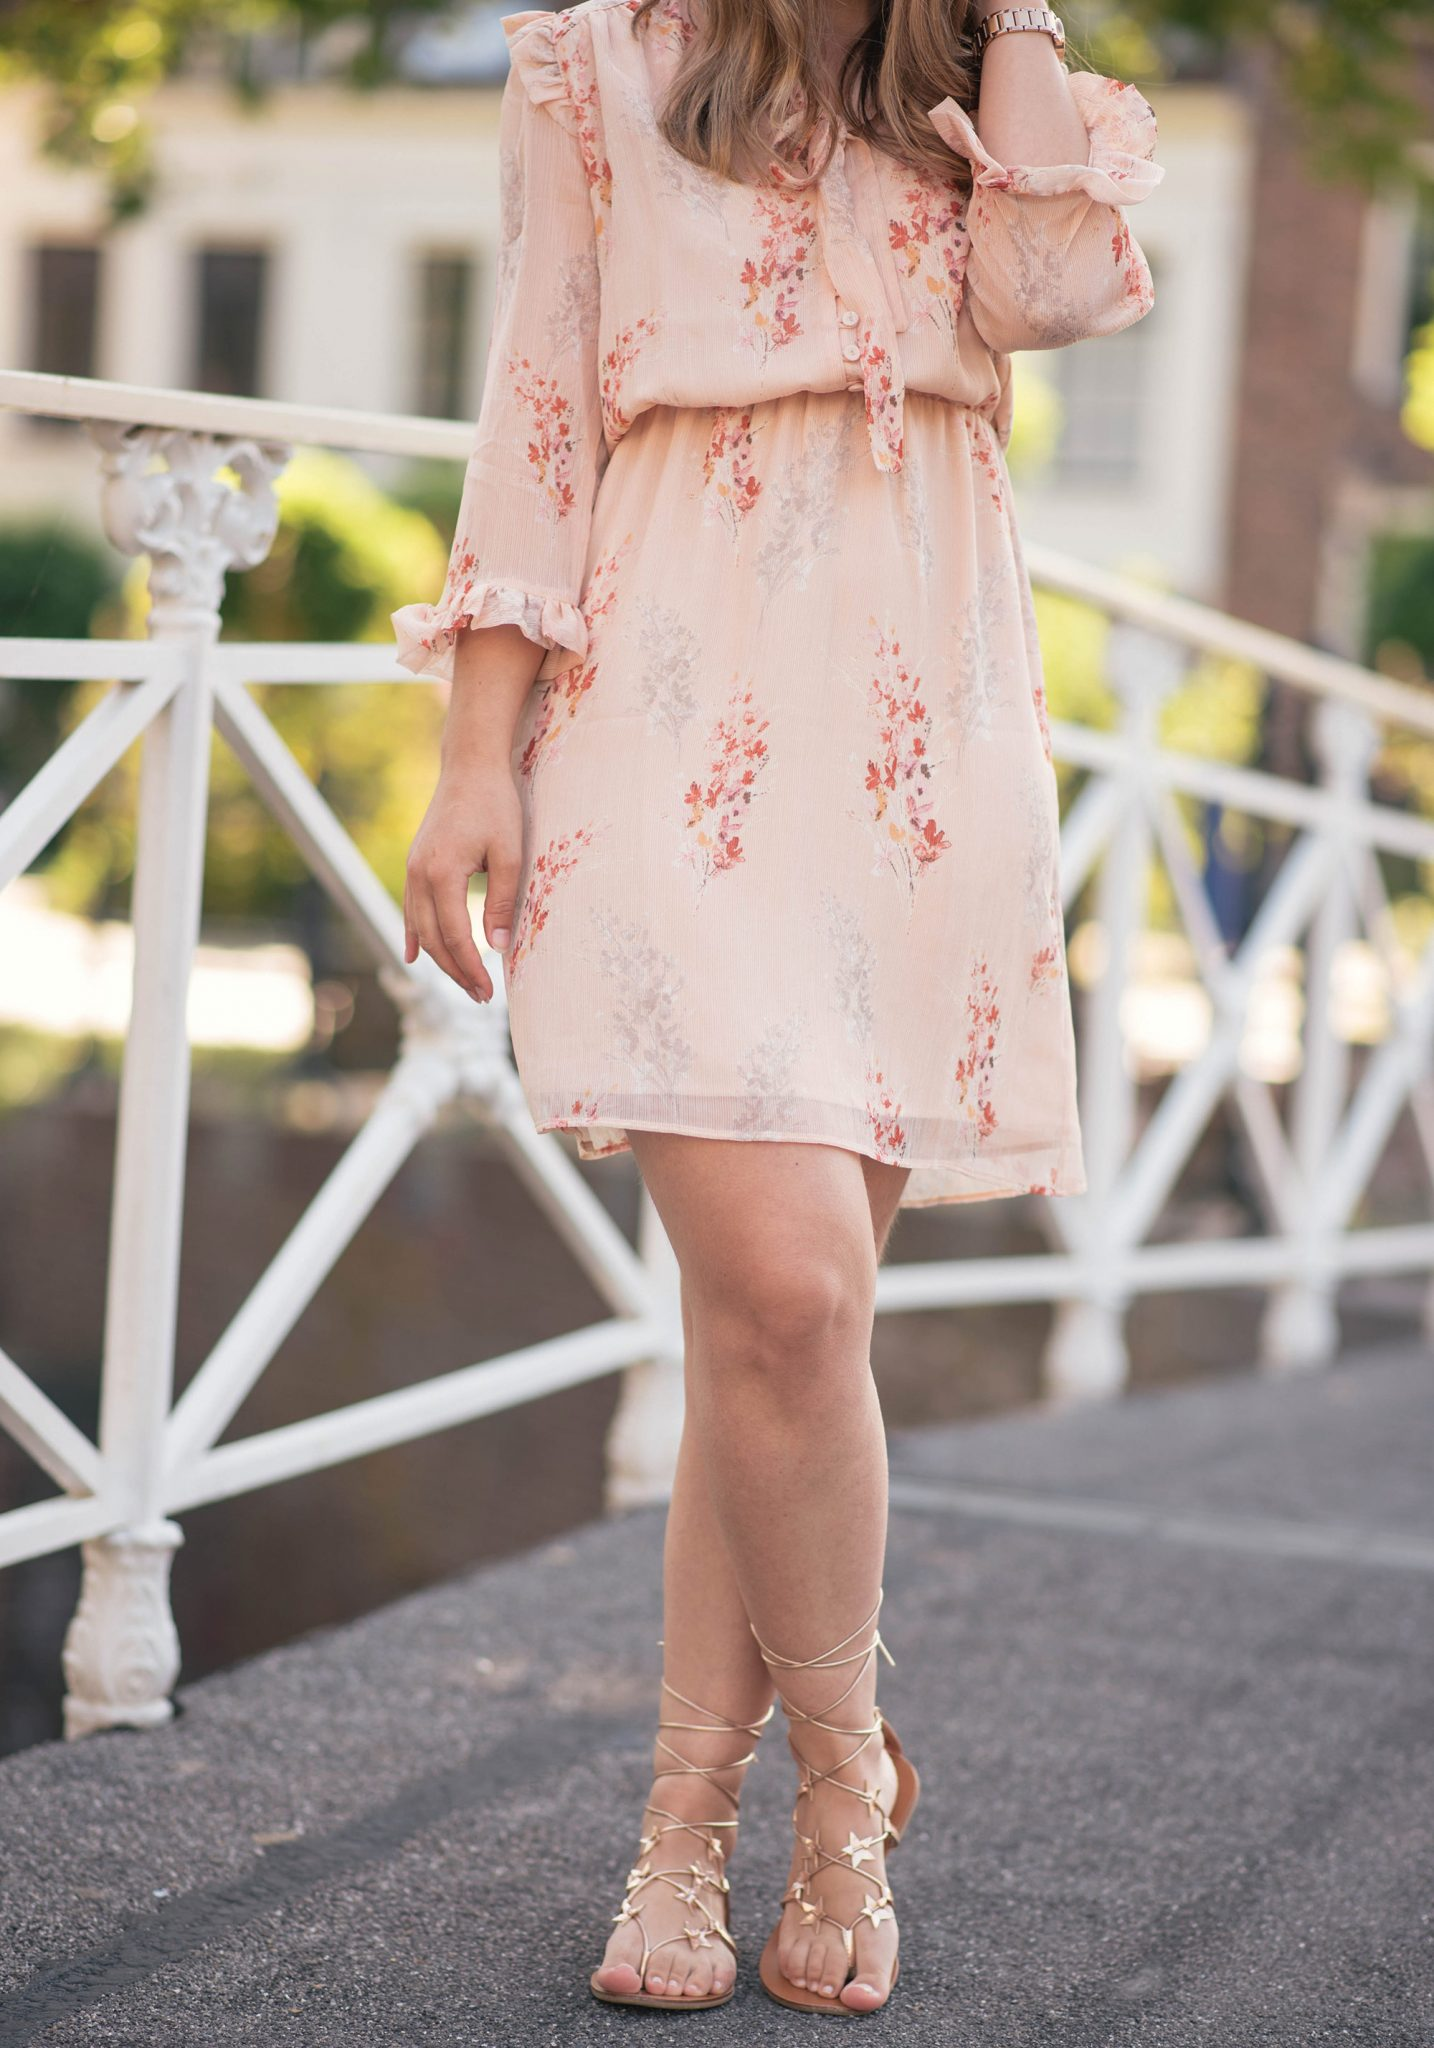 blush-floral-dress-thepetitecat-star-sandals